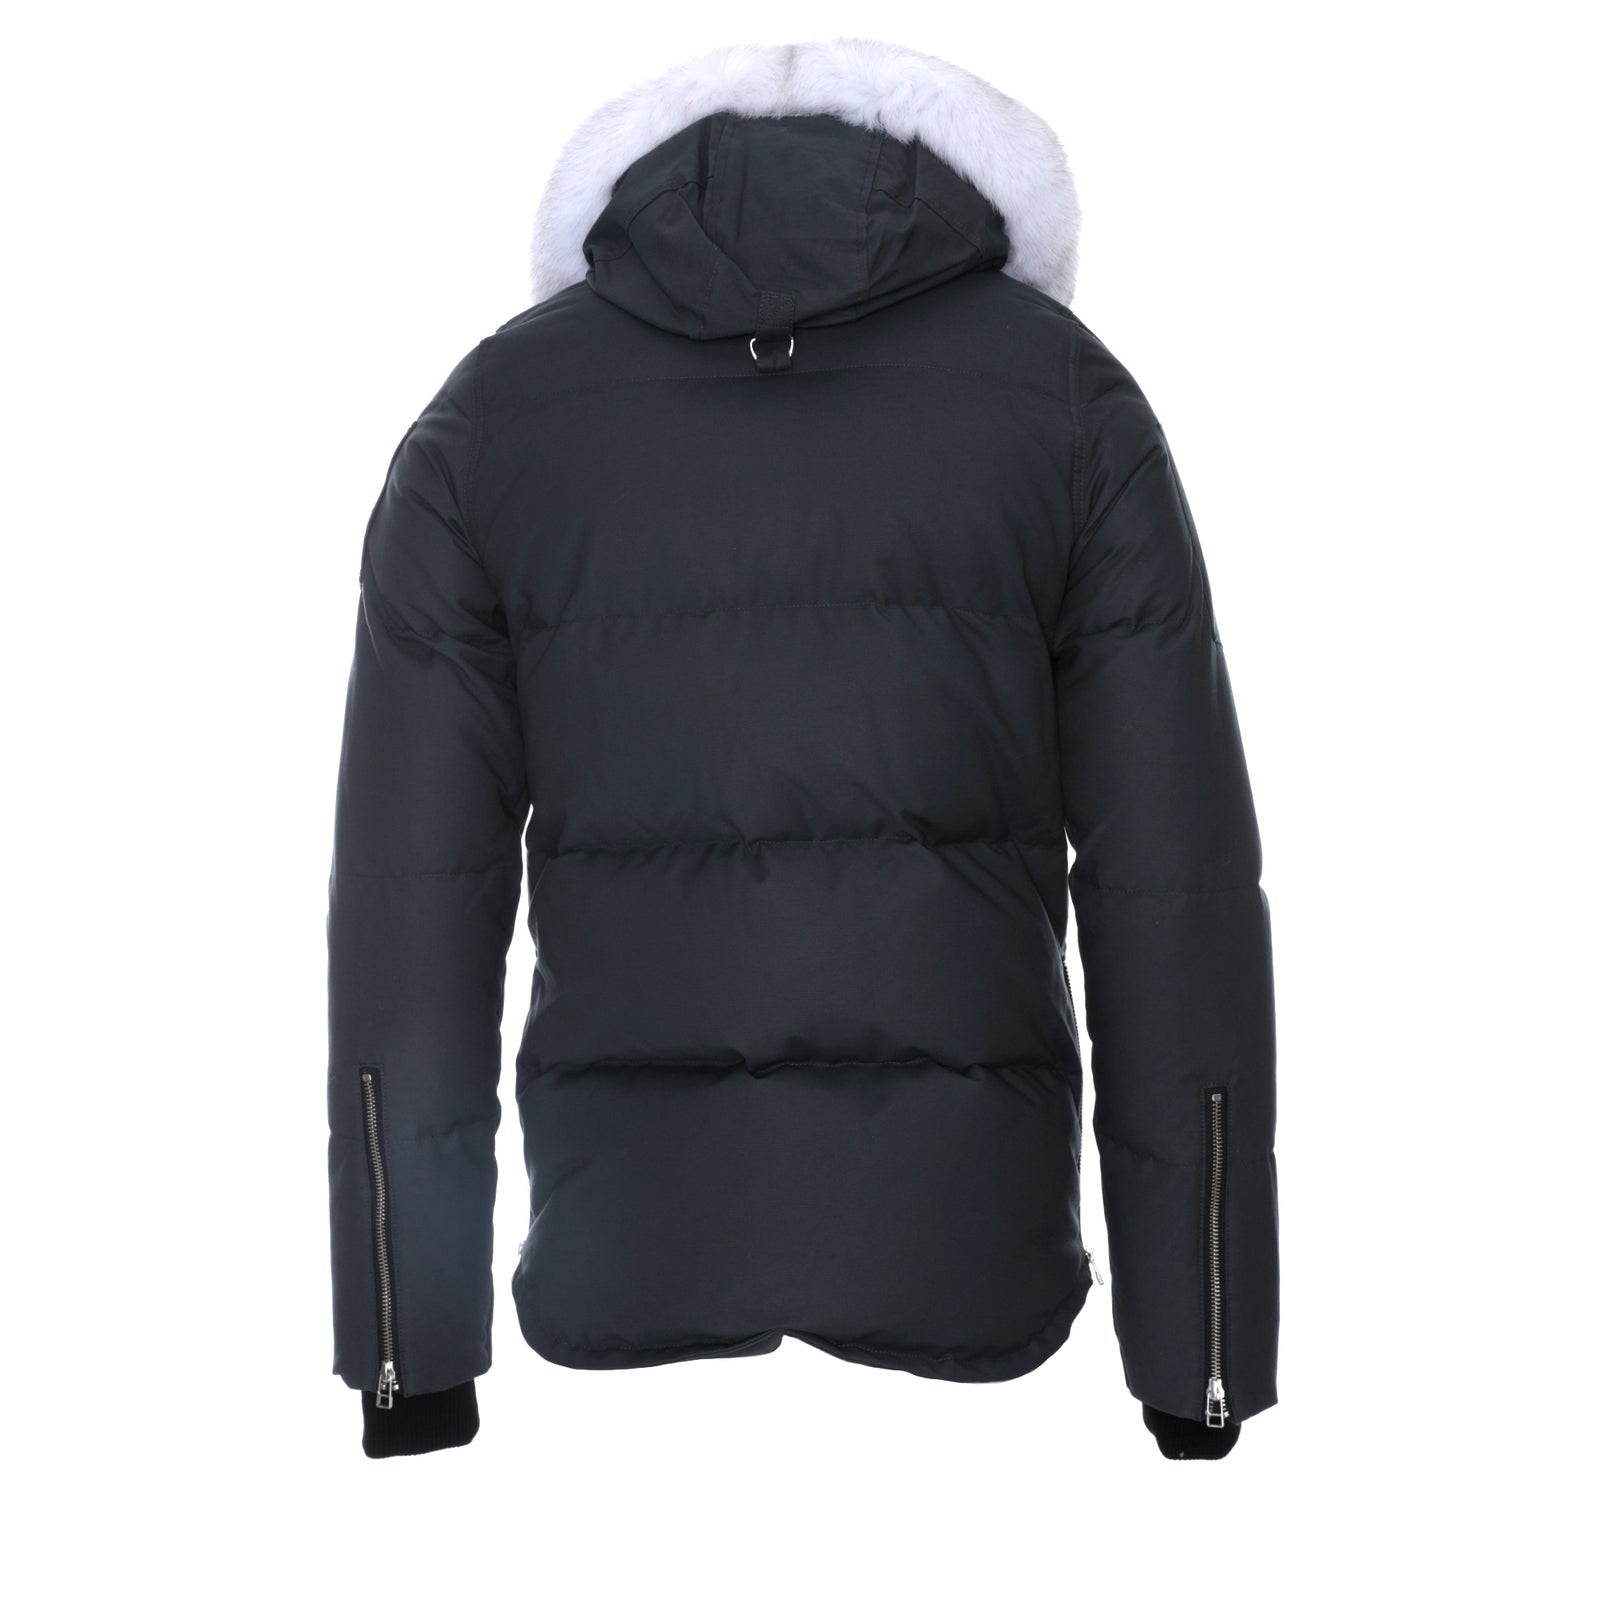 Moose Knuckle Men's 3Q Jacket